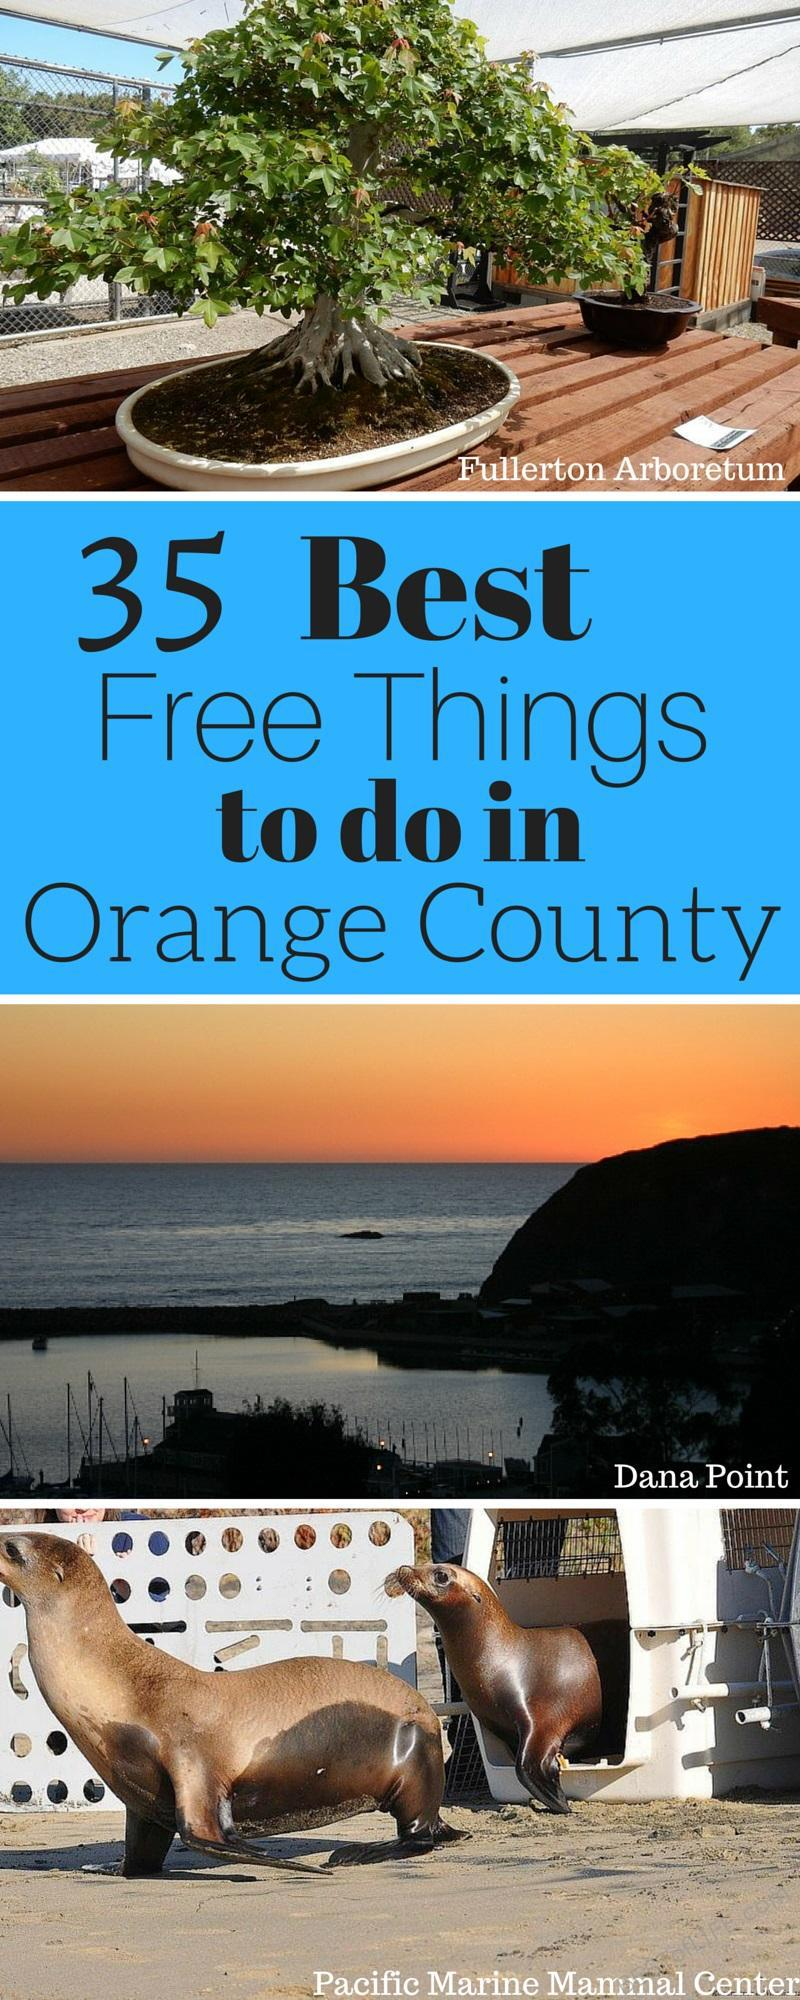 With so many of the best free things to do in Orange County, you can save money without losing out on the fun as you explore one of the most popular areas in California. What to do in Orange County | Orange County Travel Tips | How to Save Money During Travel #orangecounty #thingstodo #travel